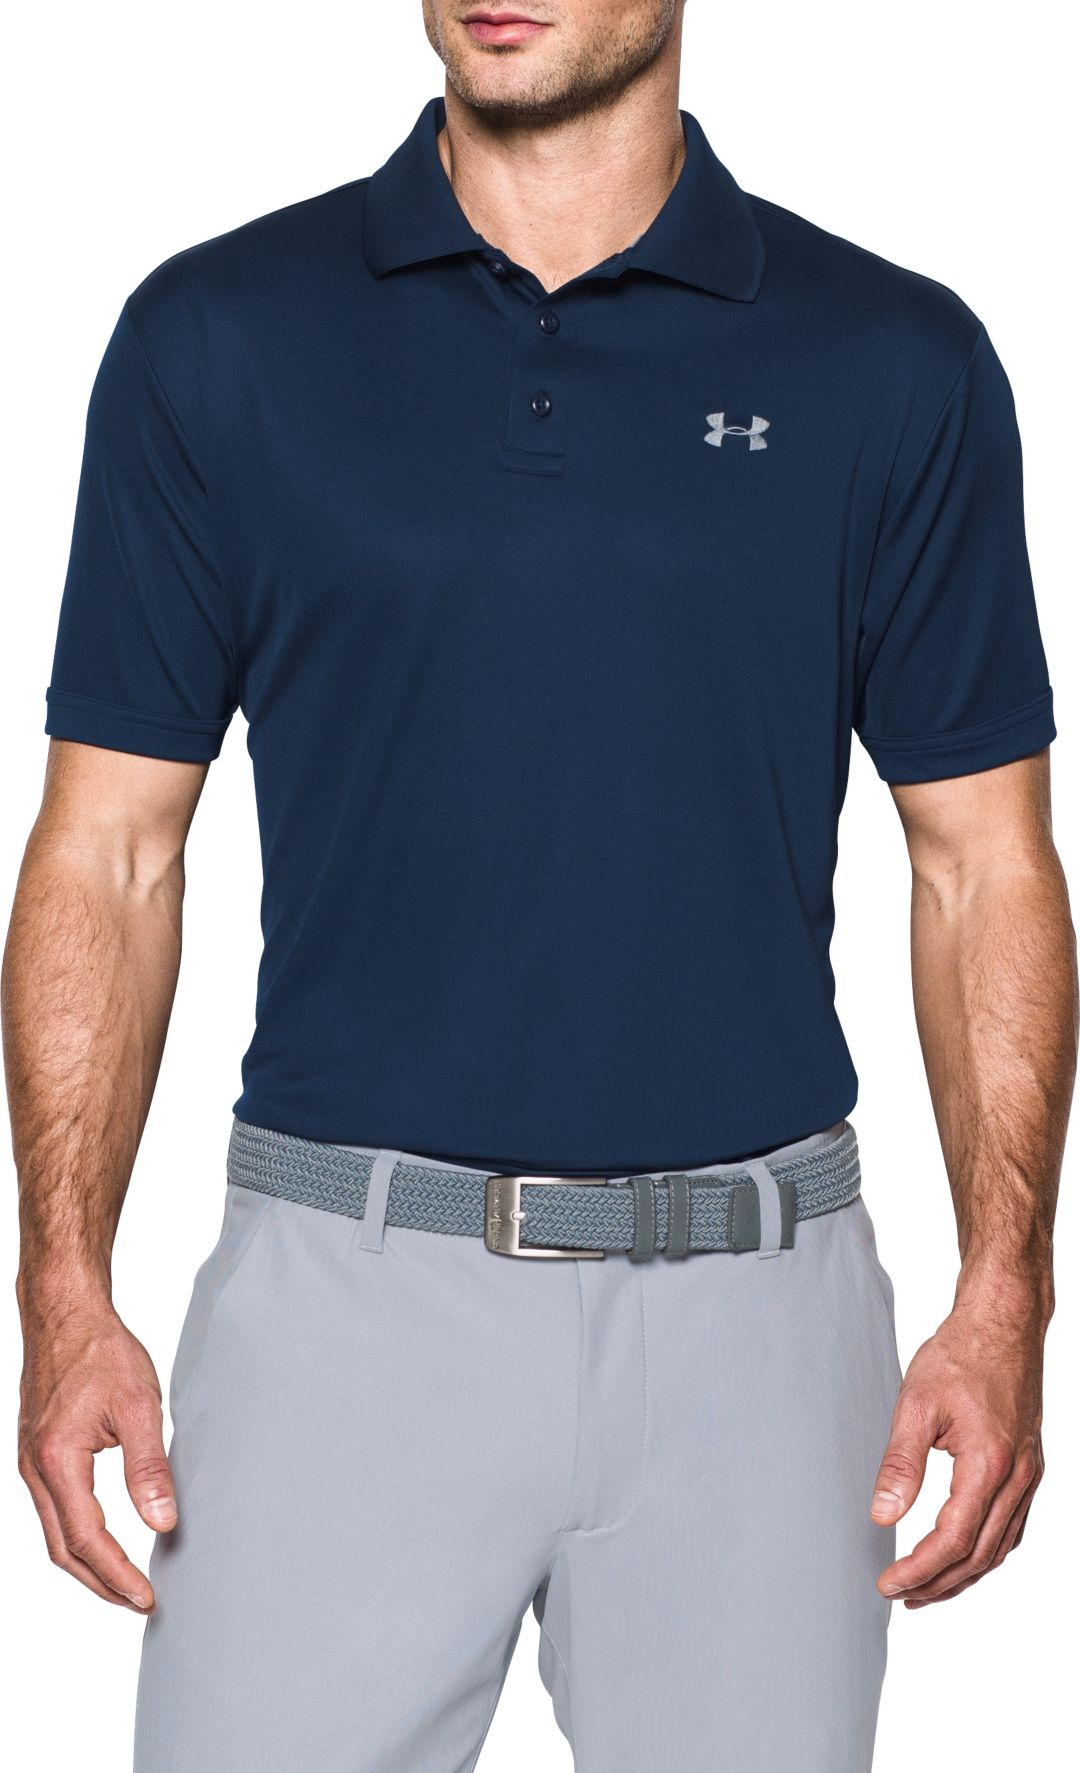 9d8f2fc972 Under Armour Men's Performance Golf Polo